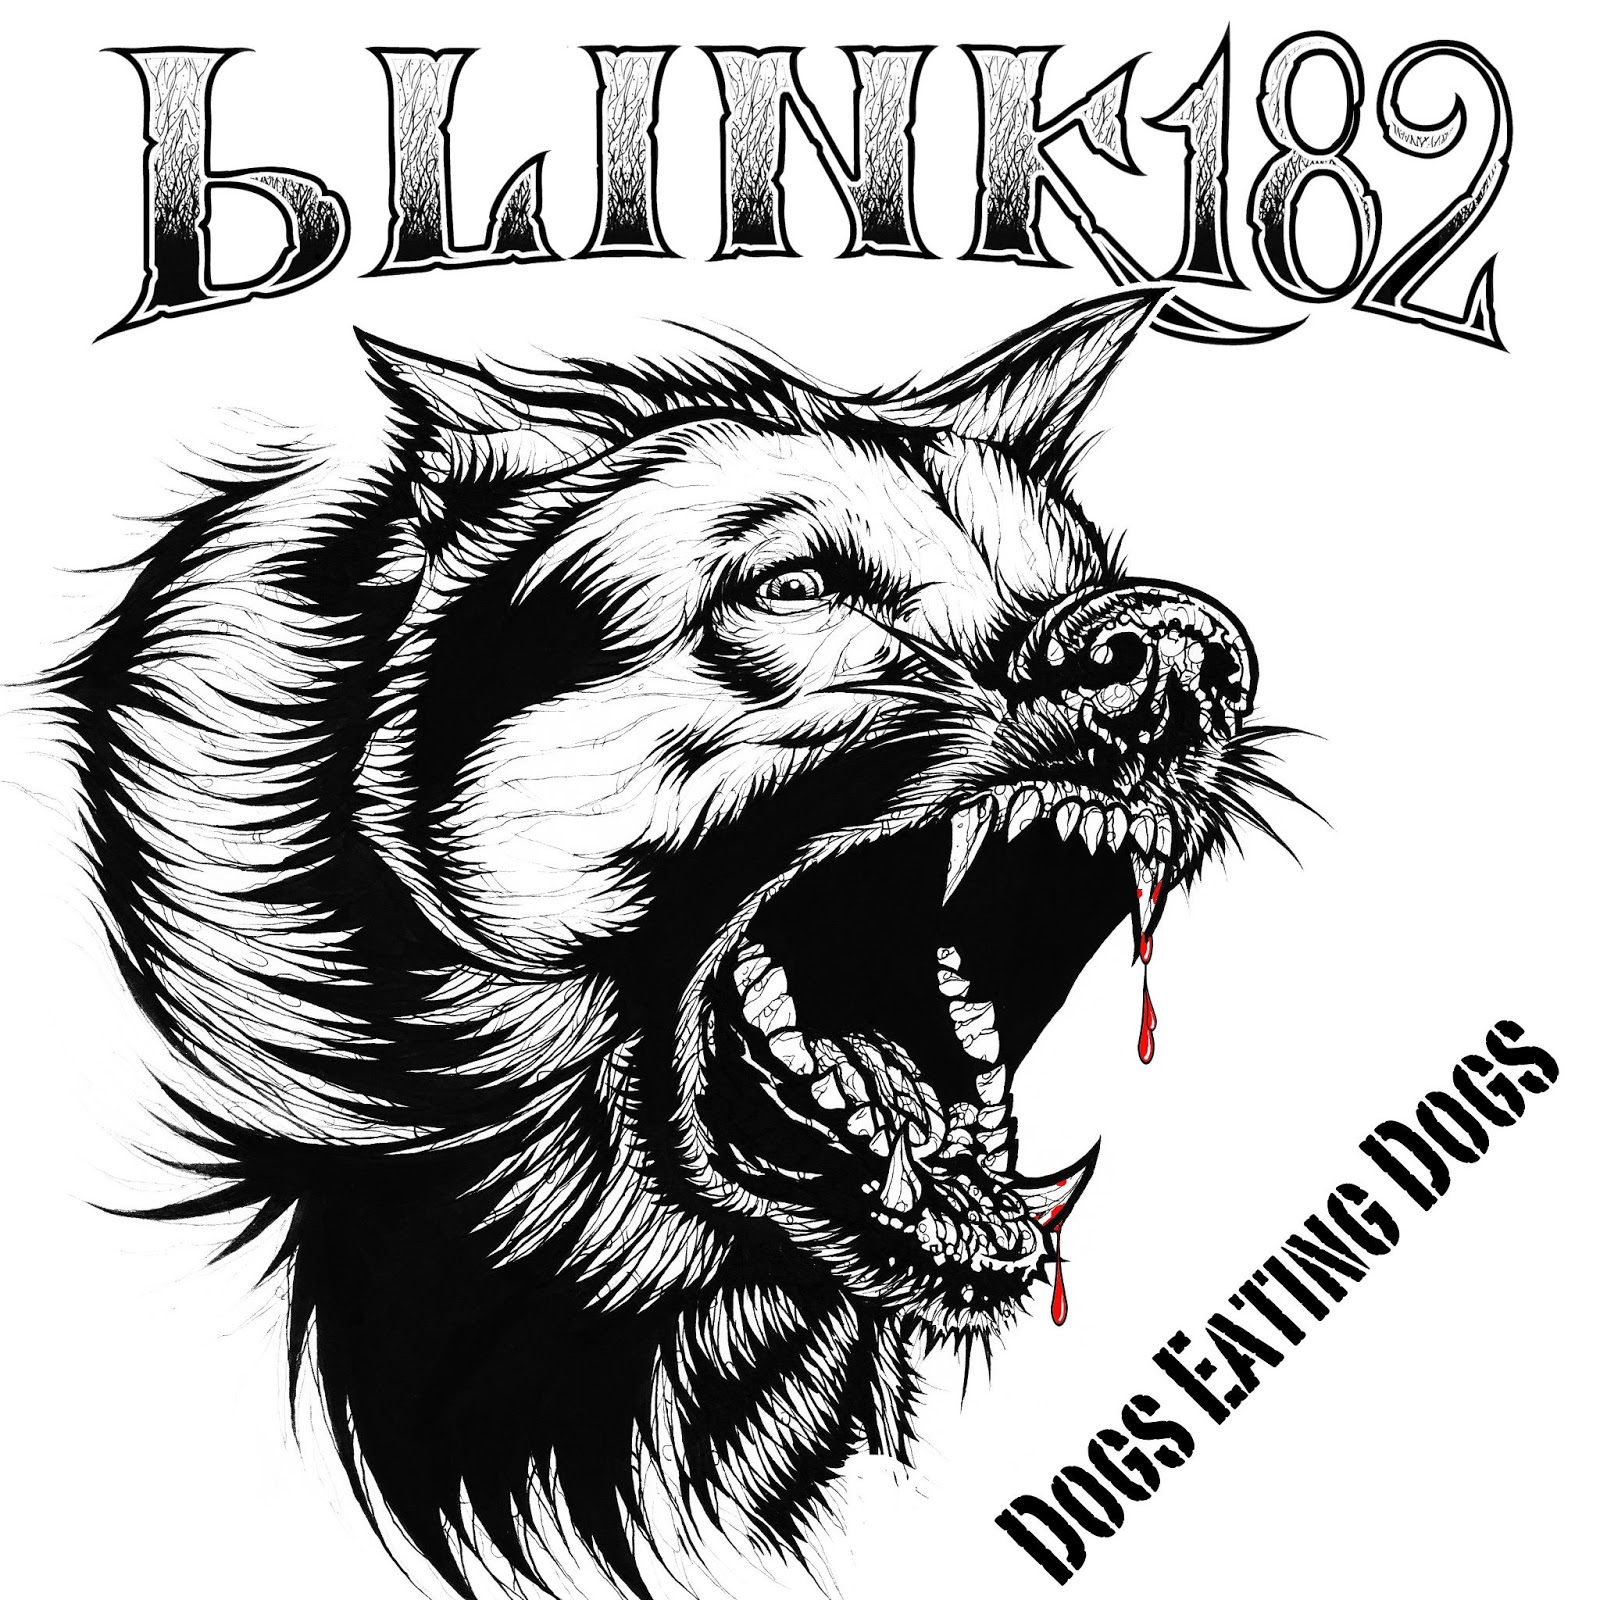 blink-182's latest studio release is the five-track EP Dogs Eating Dogs. - Image courtesy blink-182